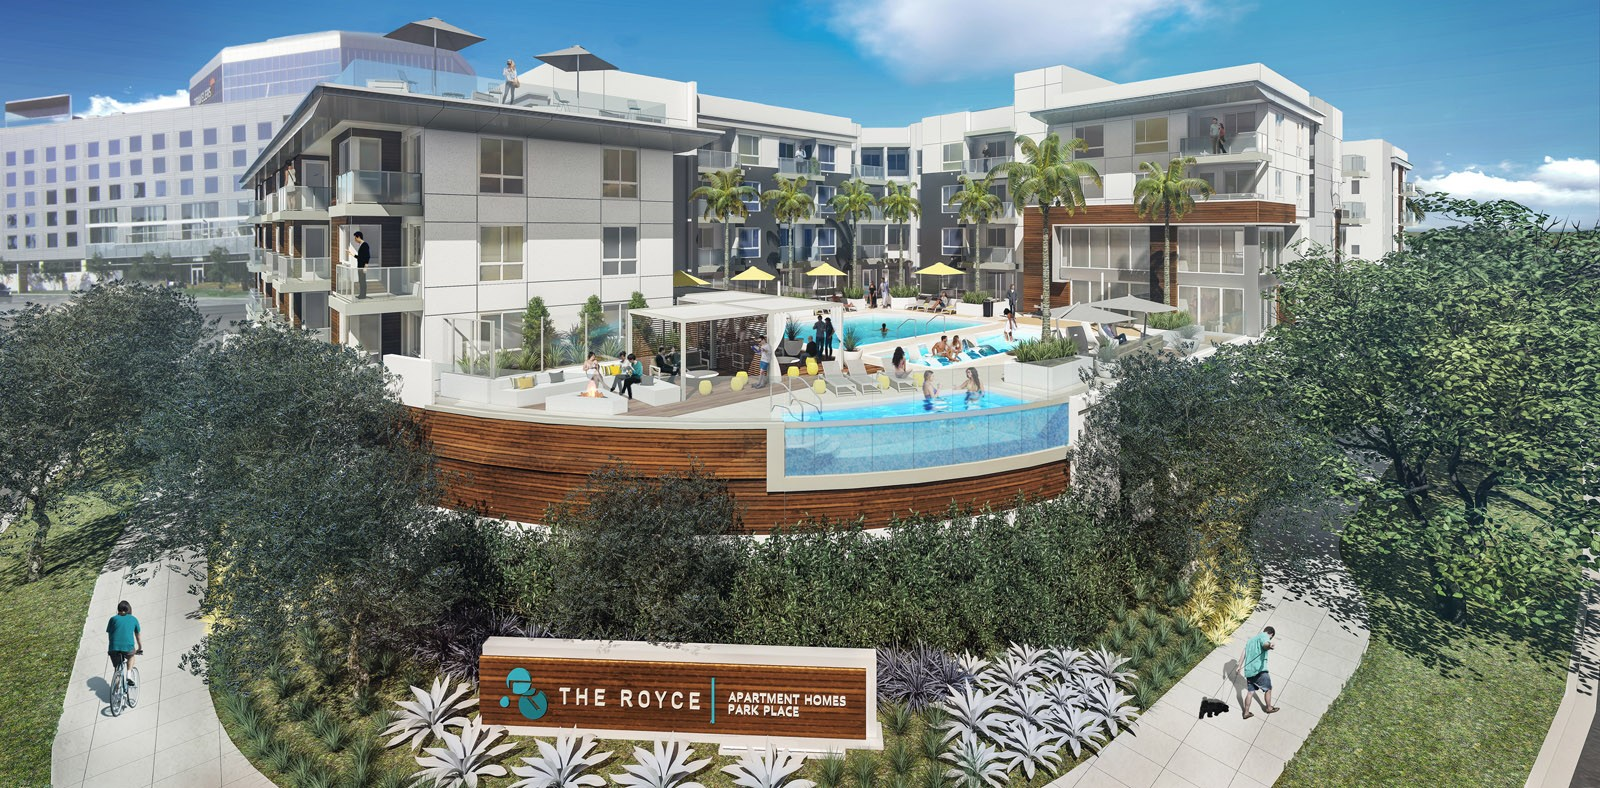 The Royce. 765 Apartments for Rent in Irvine  CA   Zumper